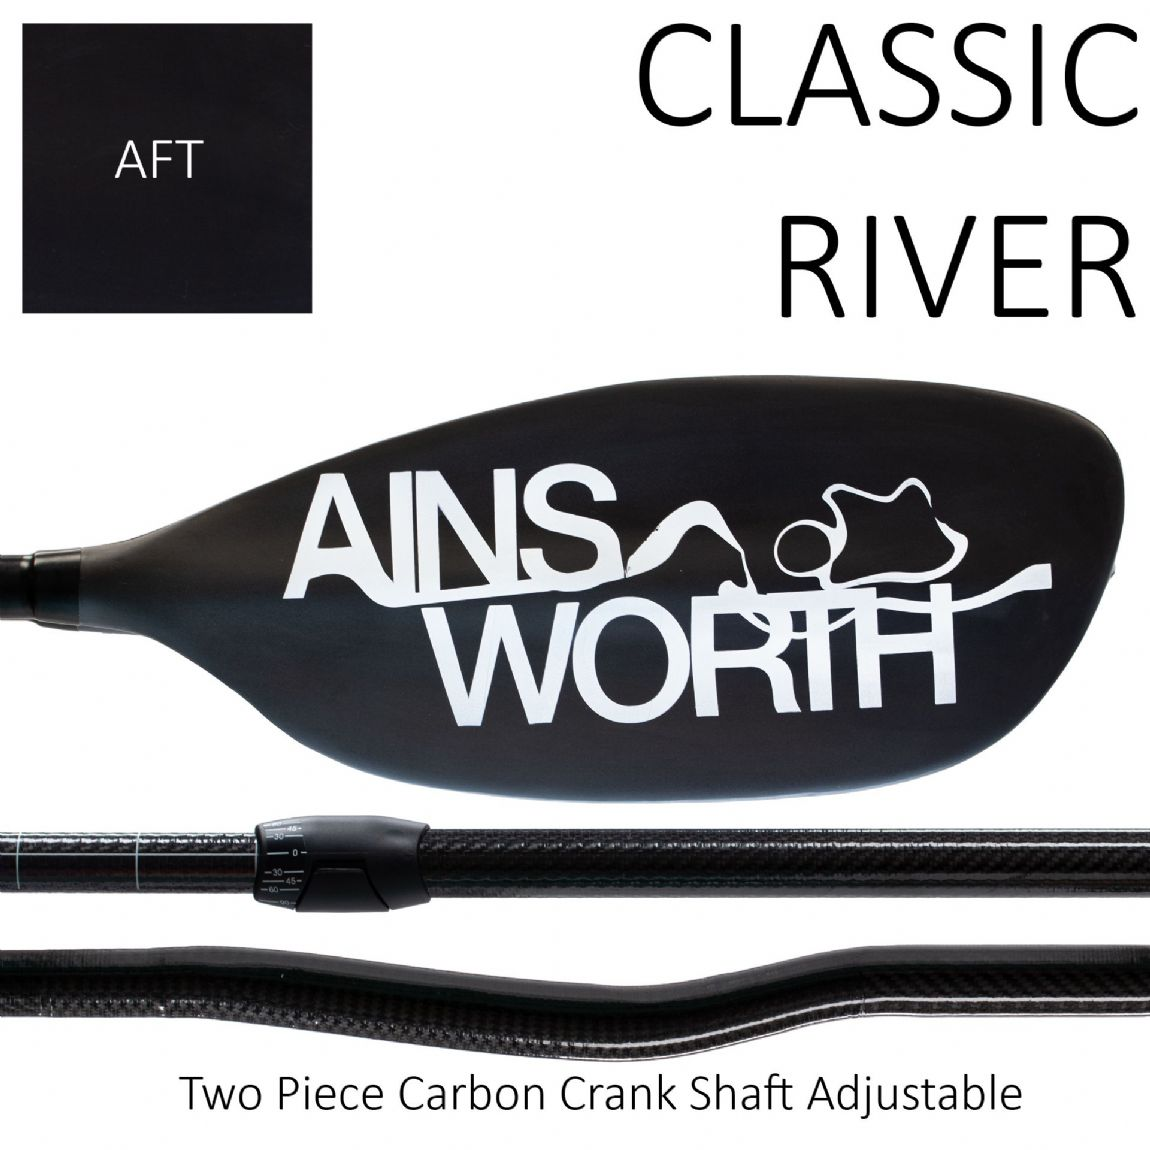 CLASSIC RIVER (AFT)  Two Piece Carbon Crank Shaft Adjustable